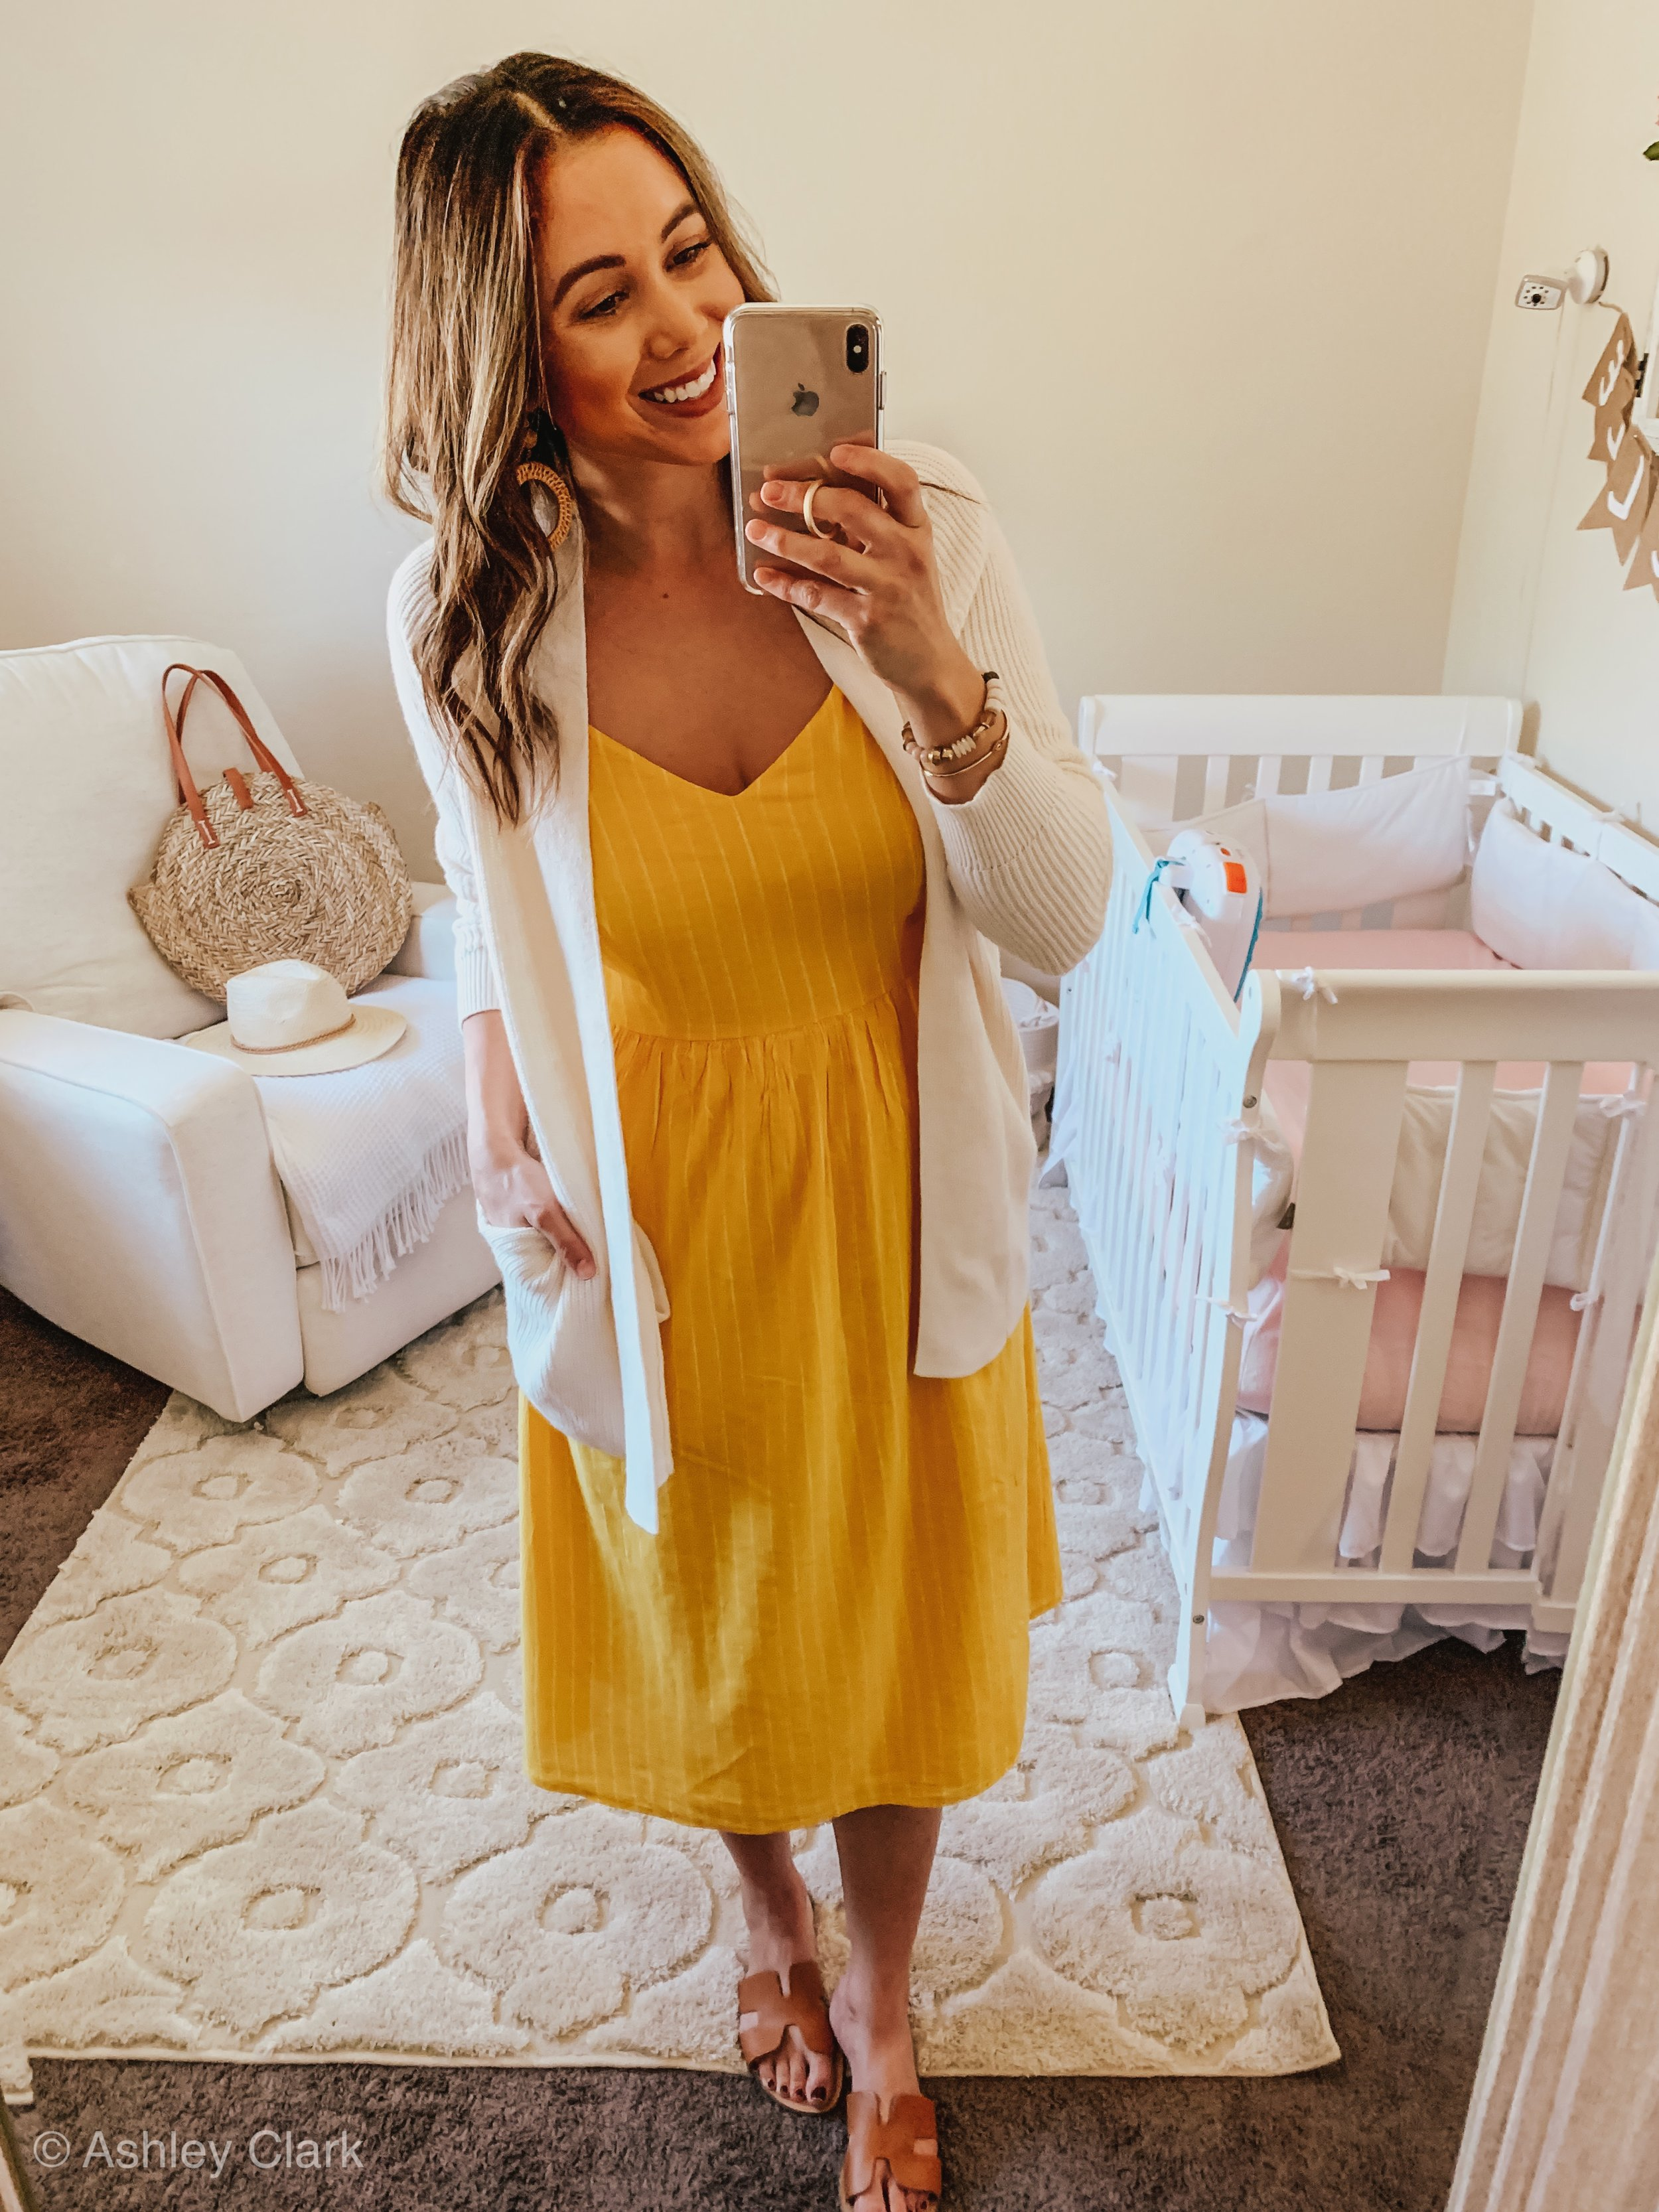 5 ways to style a dress for spring : ashley clark blog